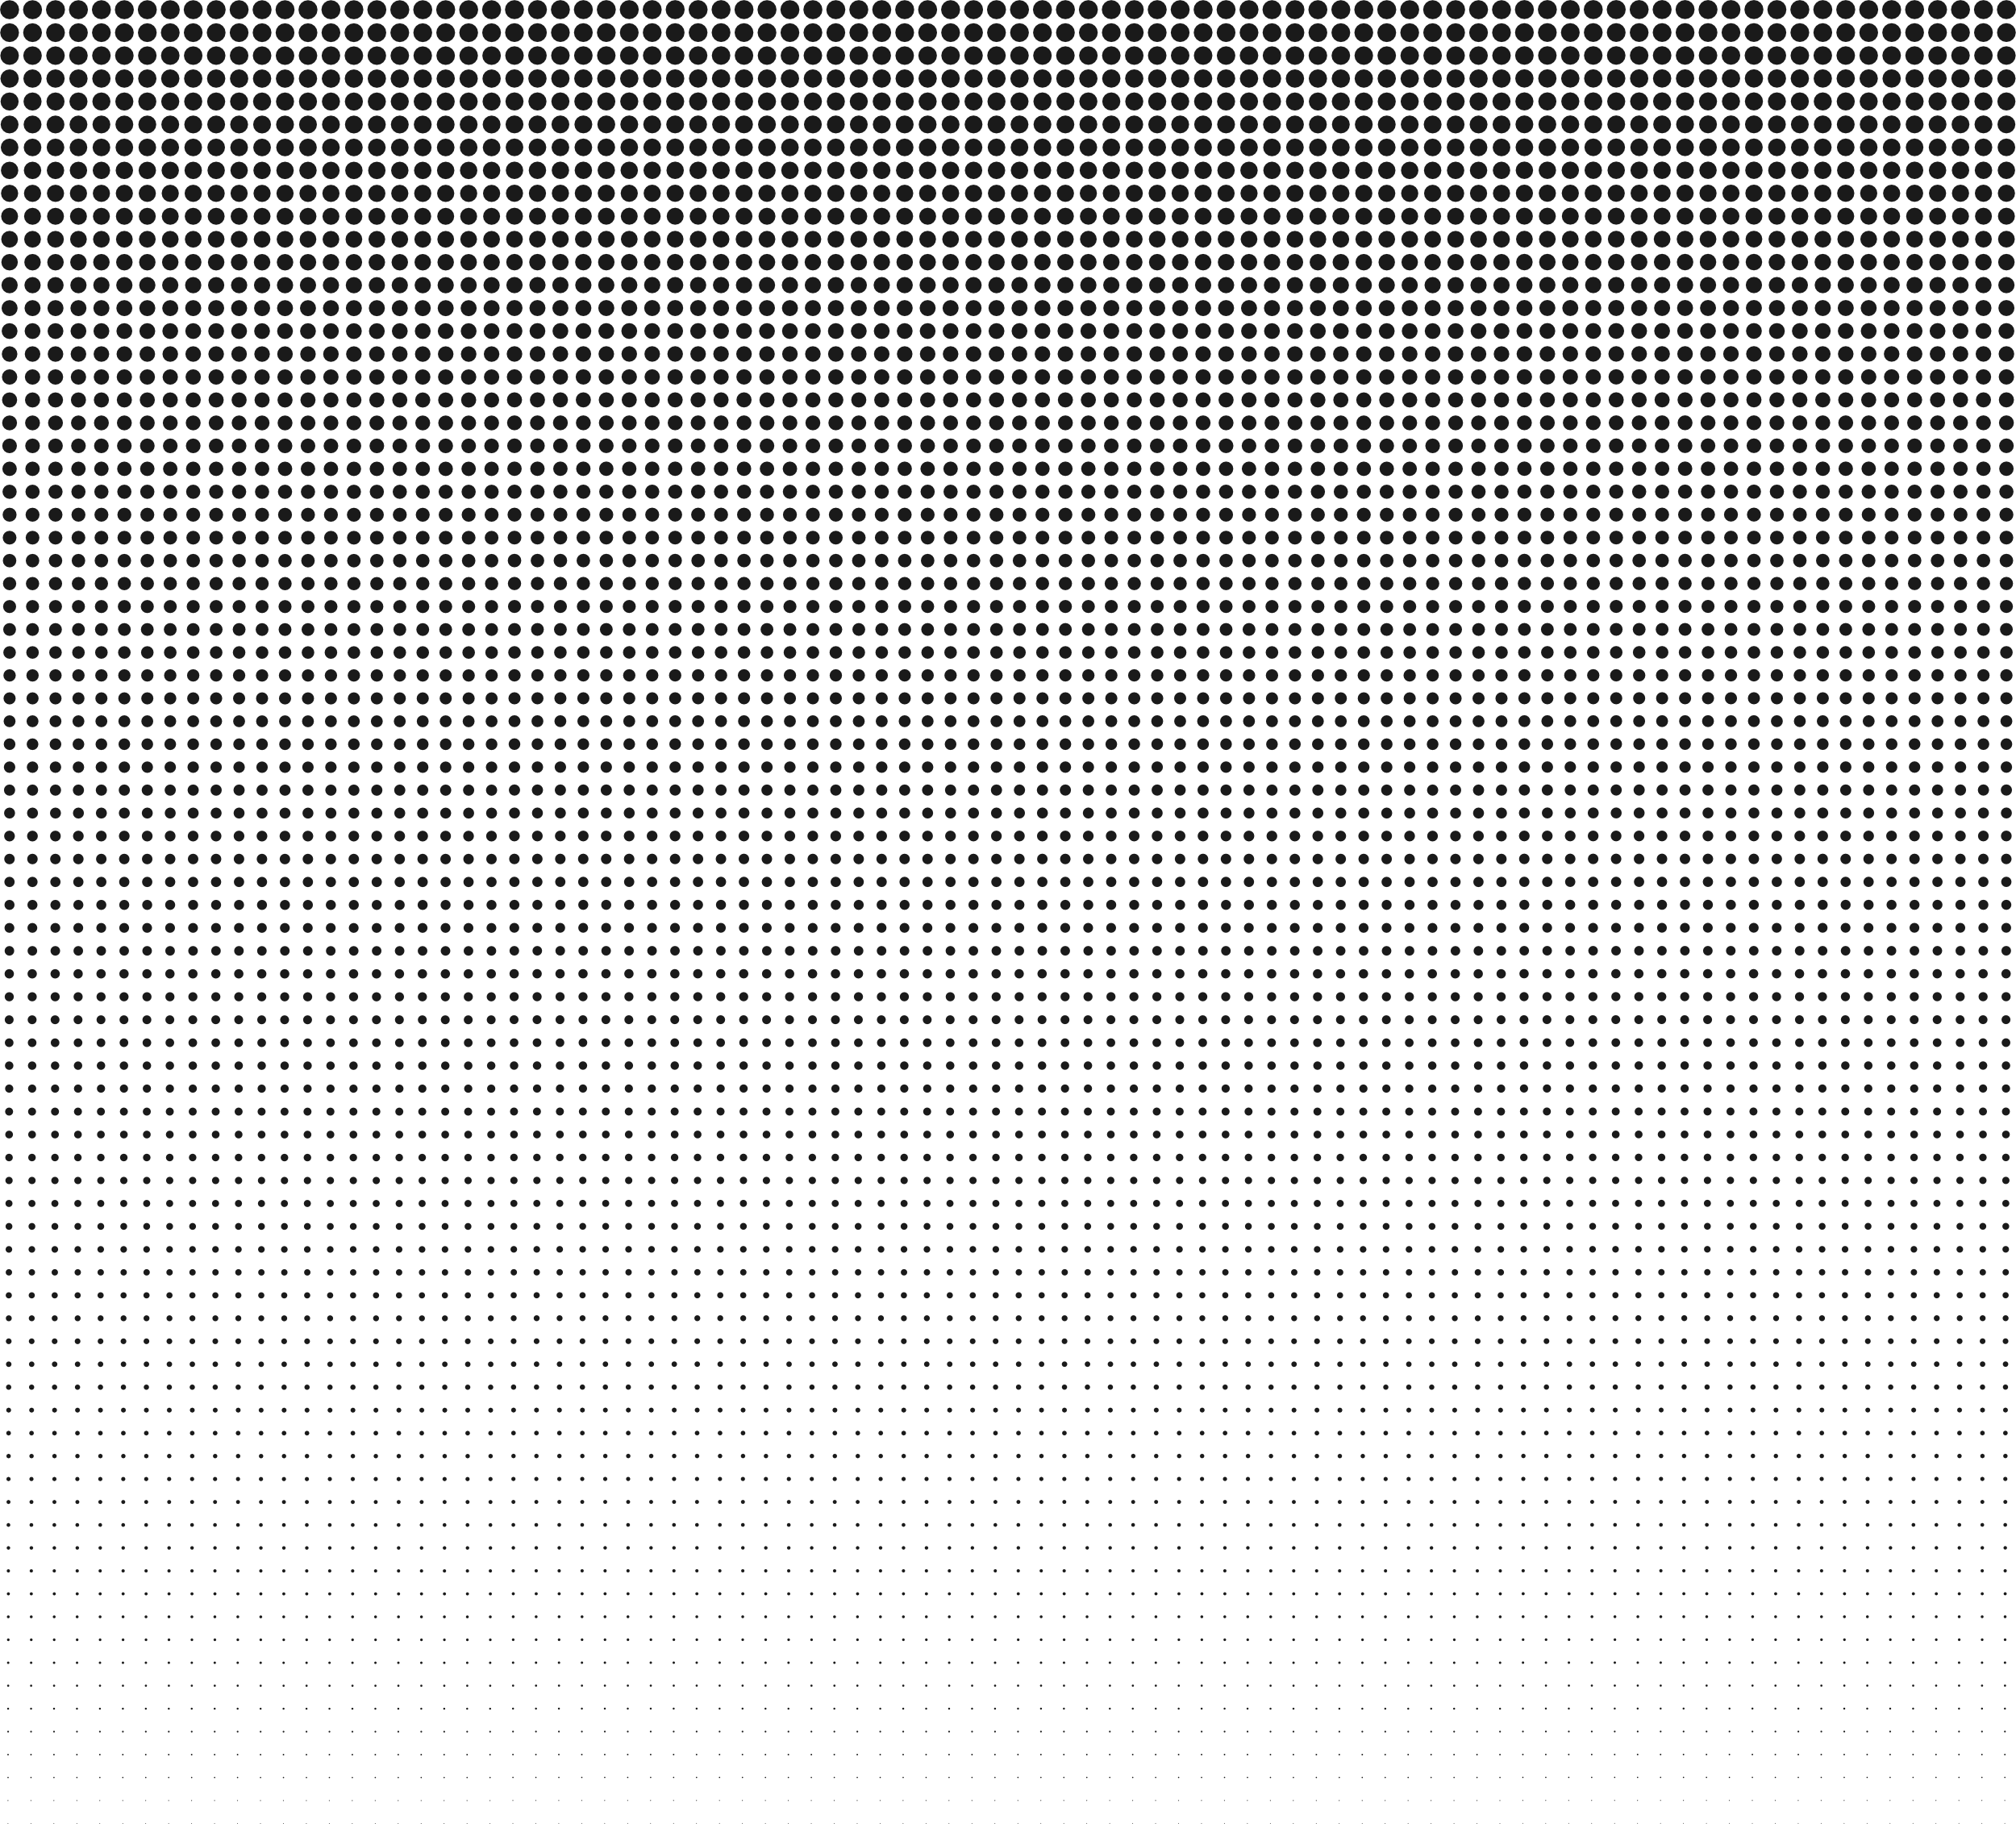 vector black and white stock Simple Halftone Background Vector